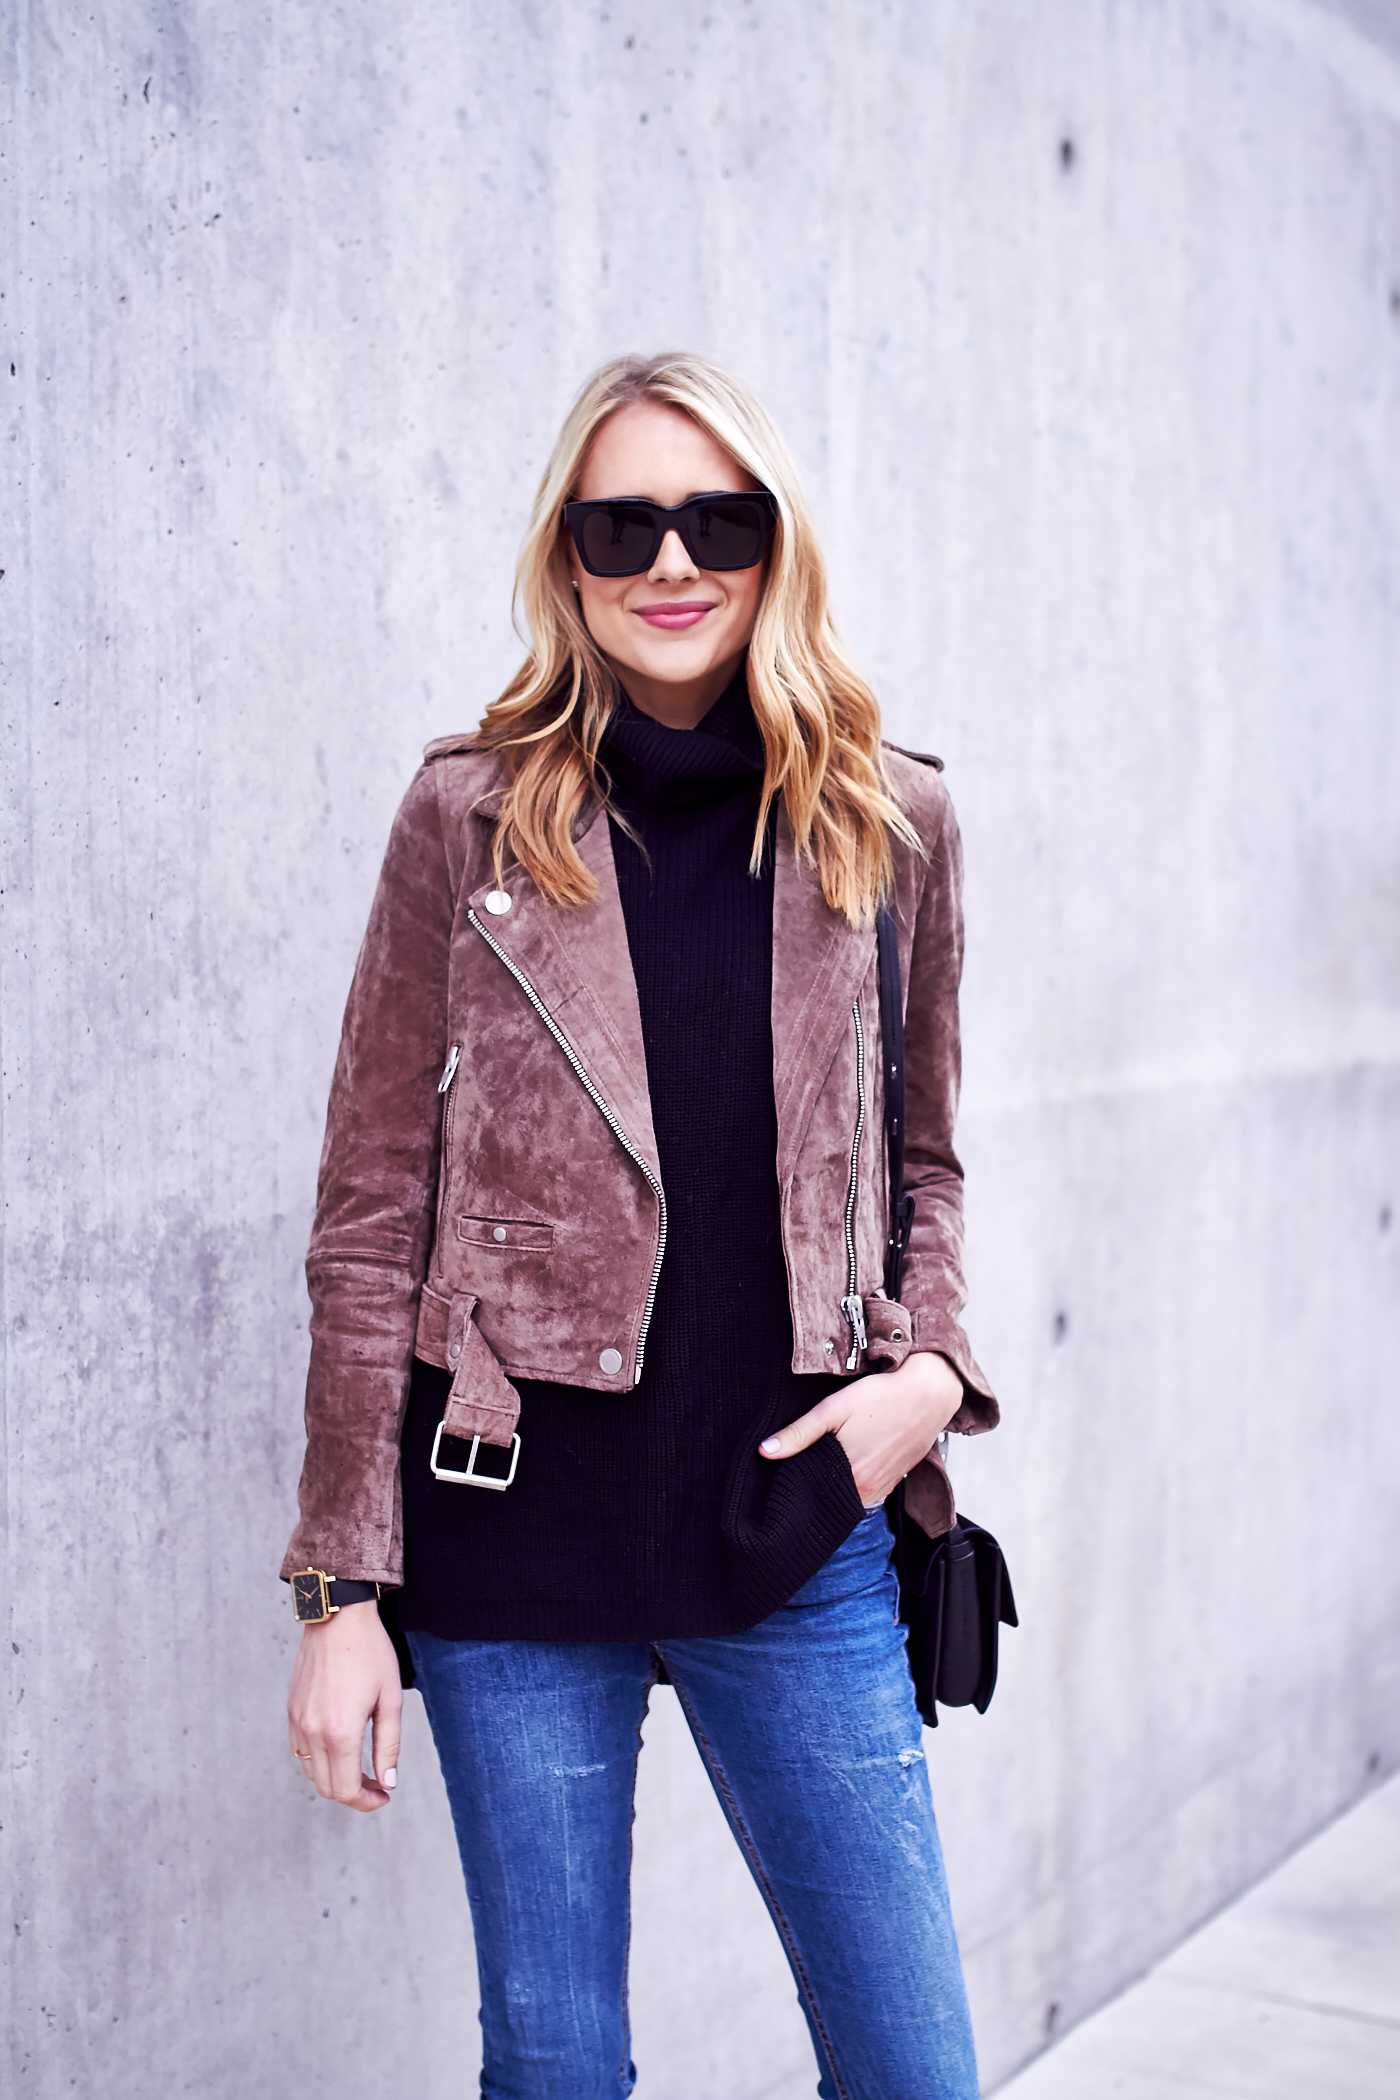 fashion-jackson-blanknyc-morning-suede-moto-jacket-black-turtleneck-sweater-denim-jeans-black-sunglasses